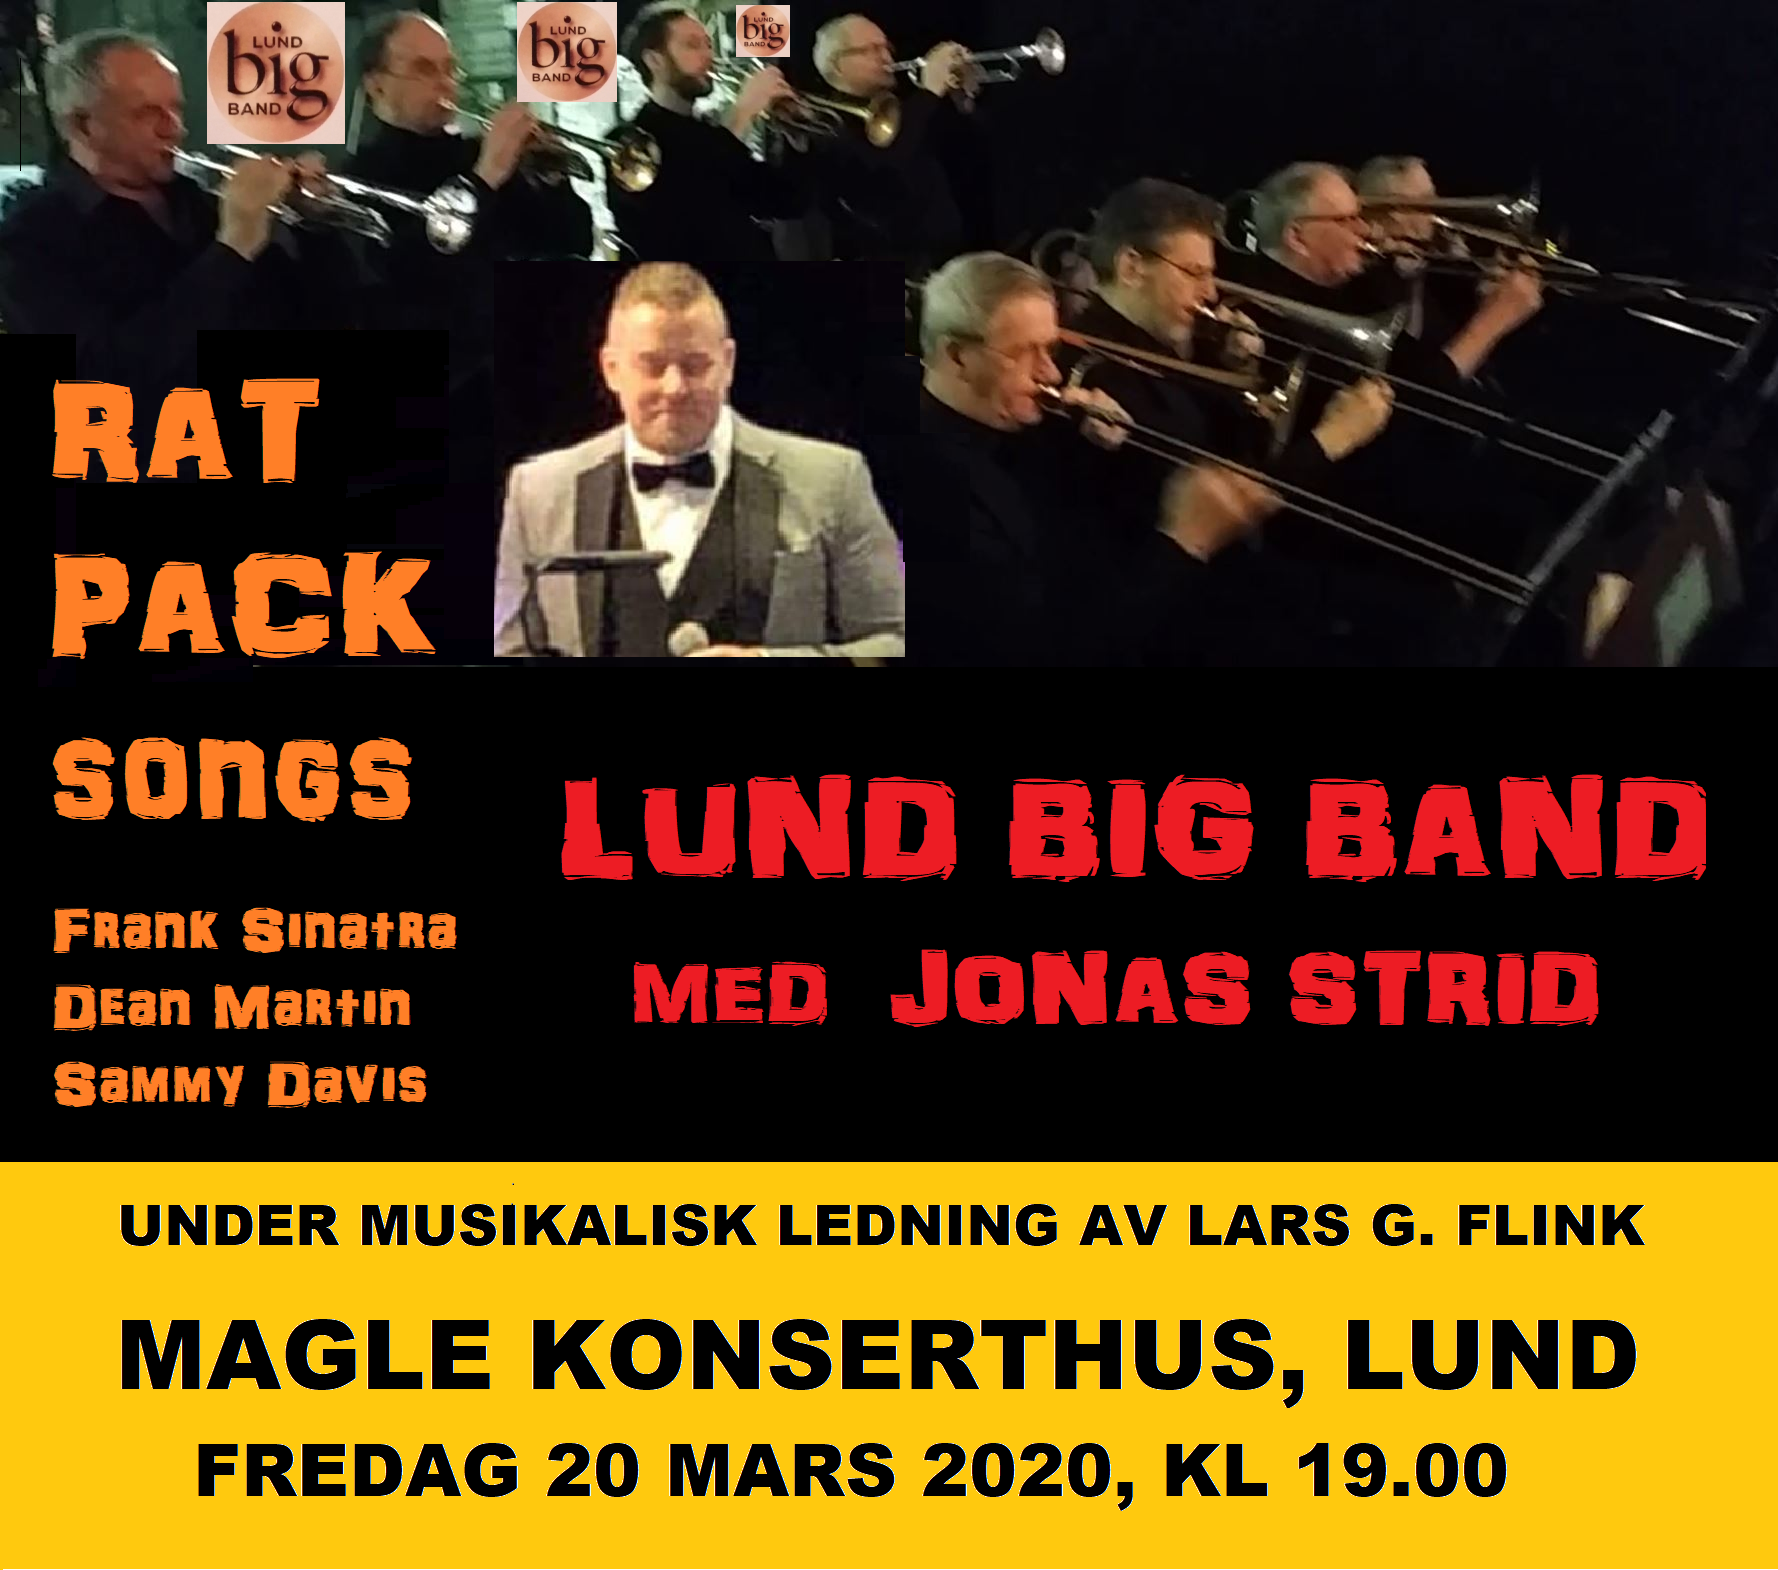 Lund Big Band Rat Pack konsert 20 mars 2020